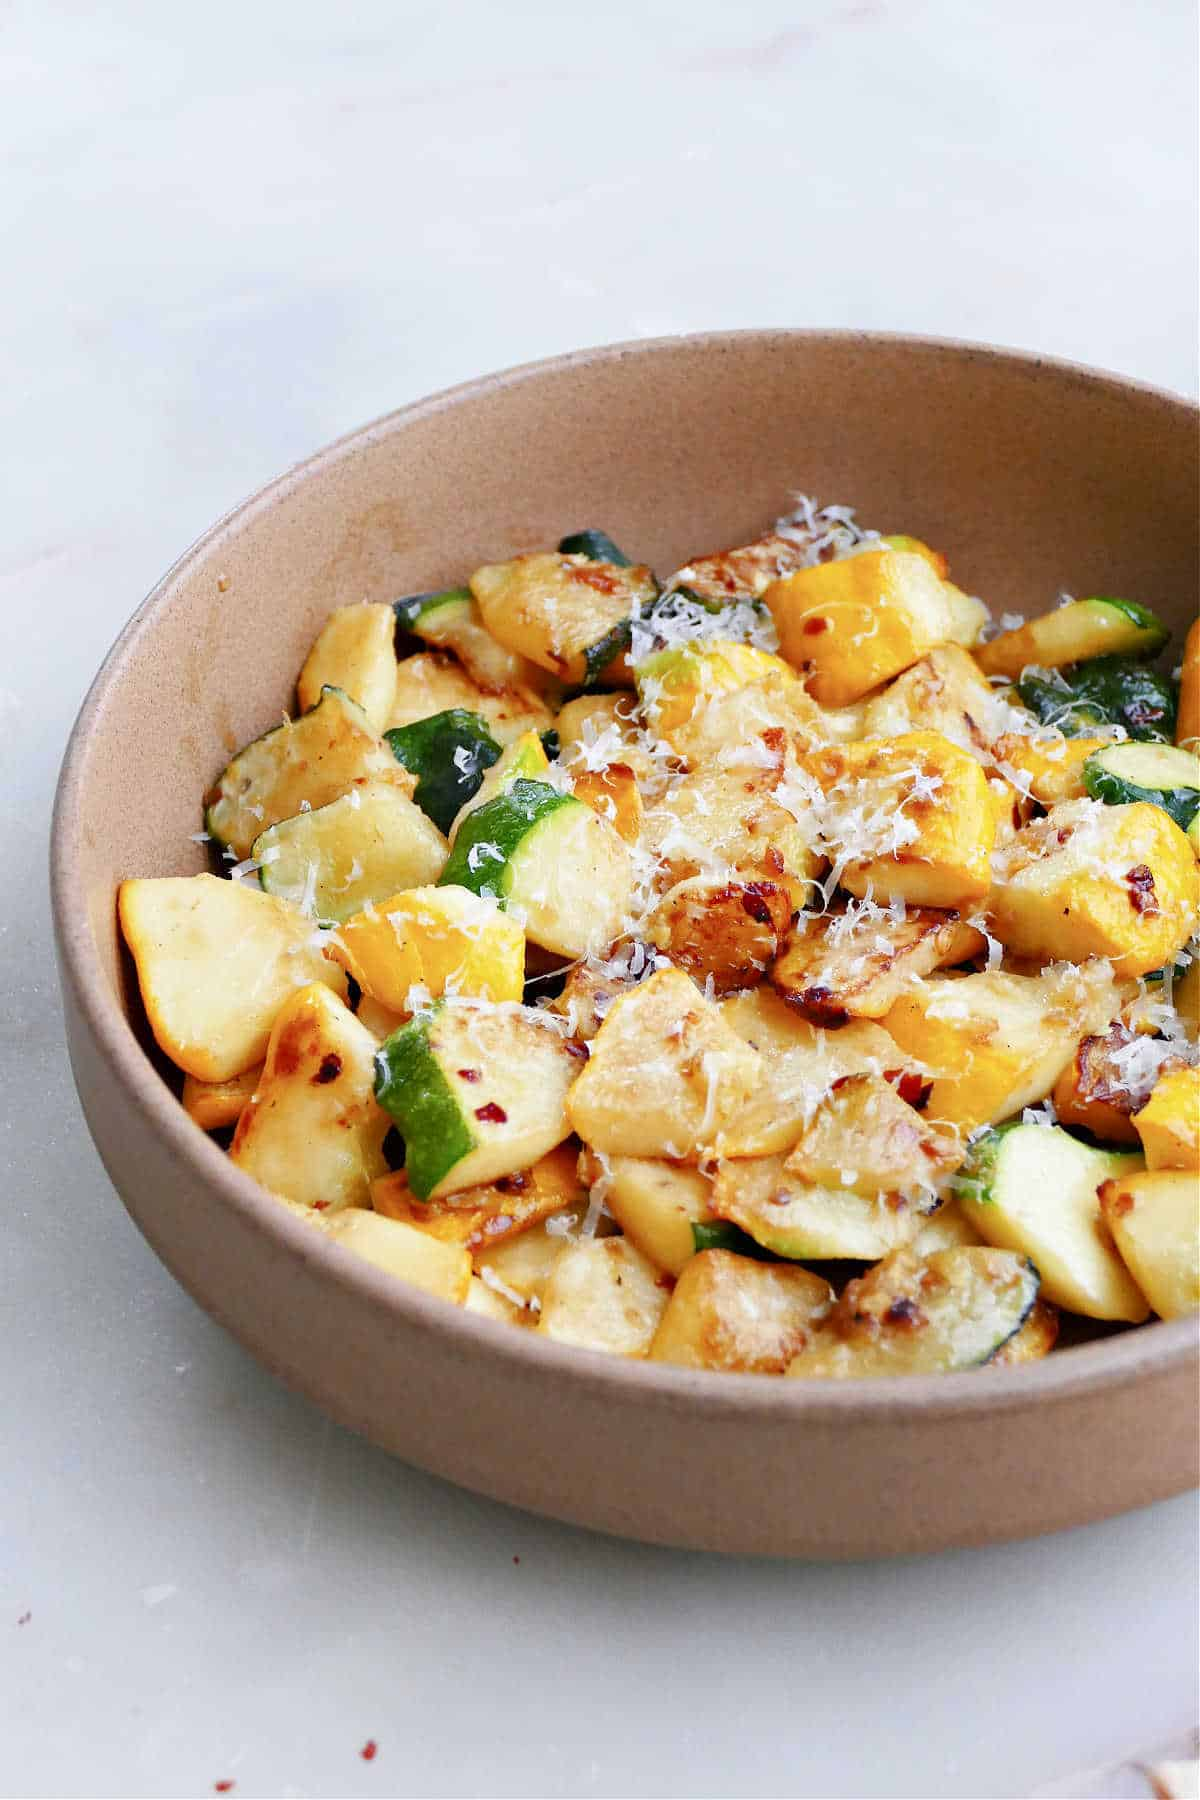 patty pan squash cooked in a skillet and topped with parmesan cheese and red pepper flakes